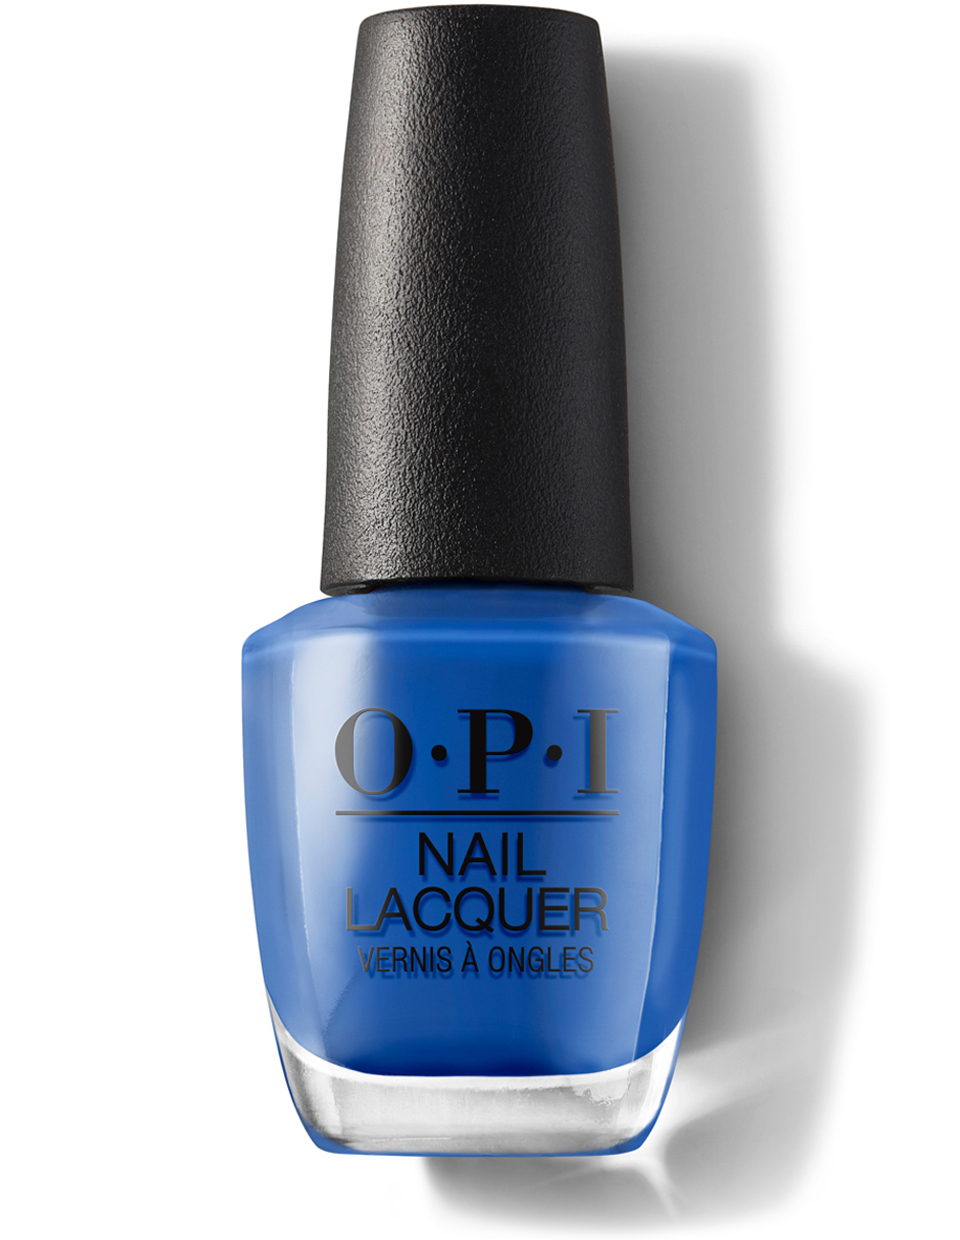 Tile Art to Warm Your Heart - Nail Lacquer | OPI